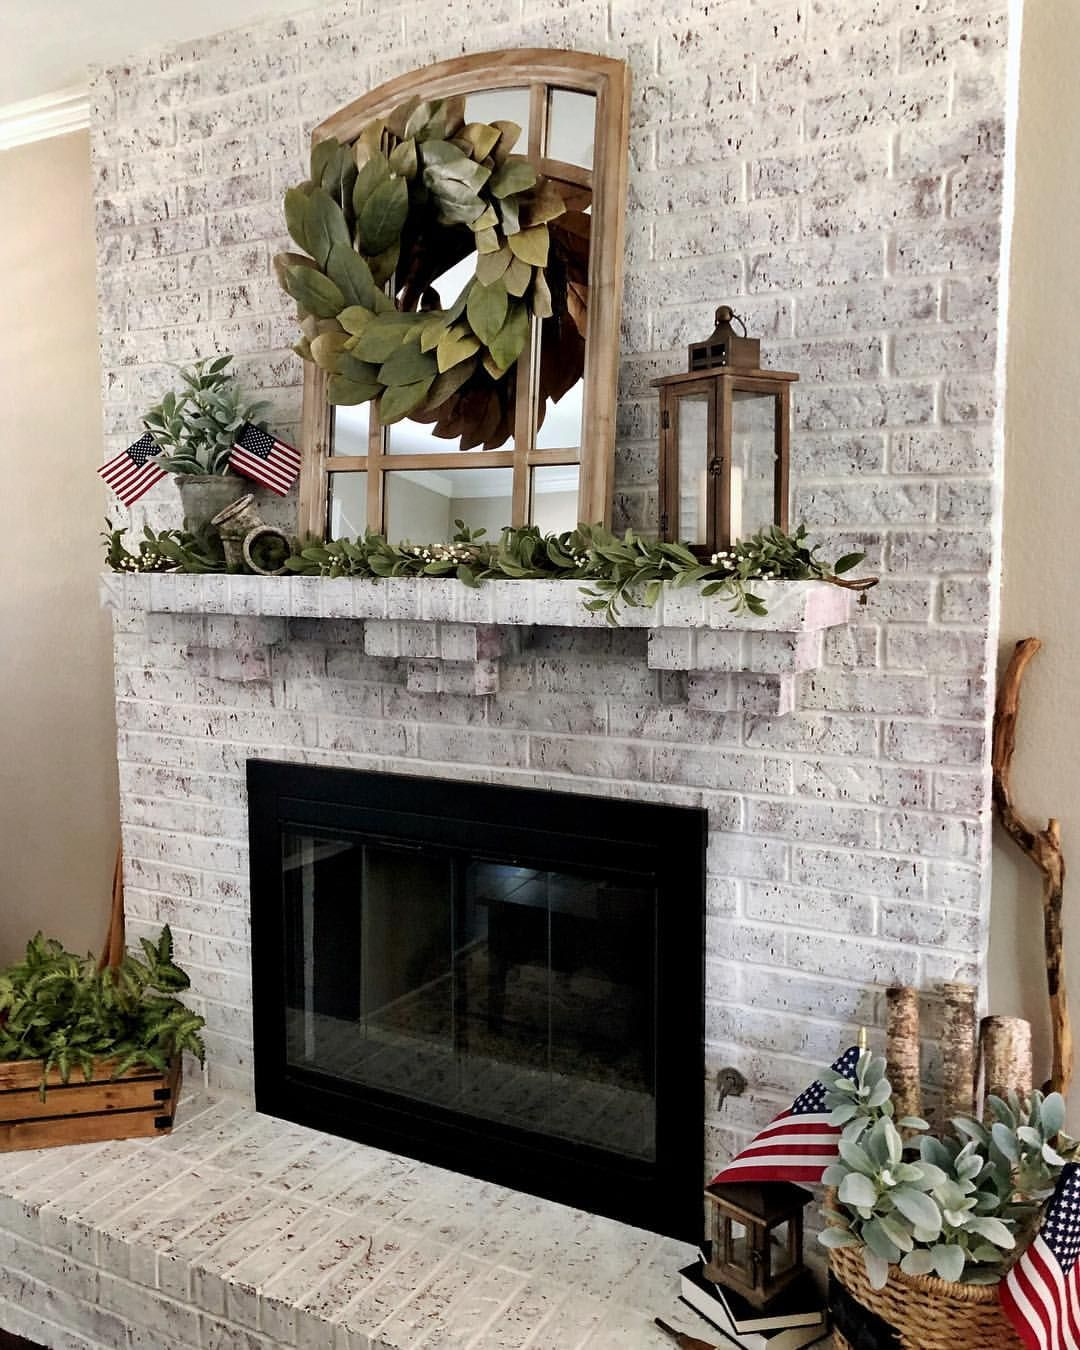 pin by tammy r fettig on new home ideas in 2019 family room rh pinterest com